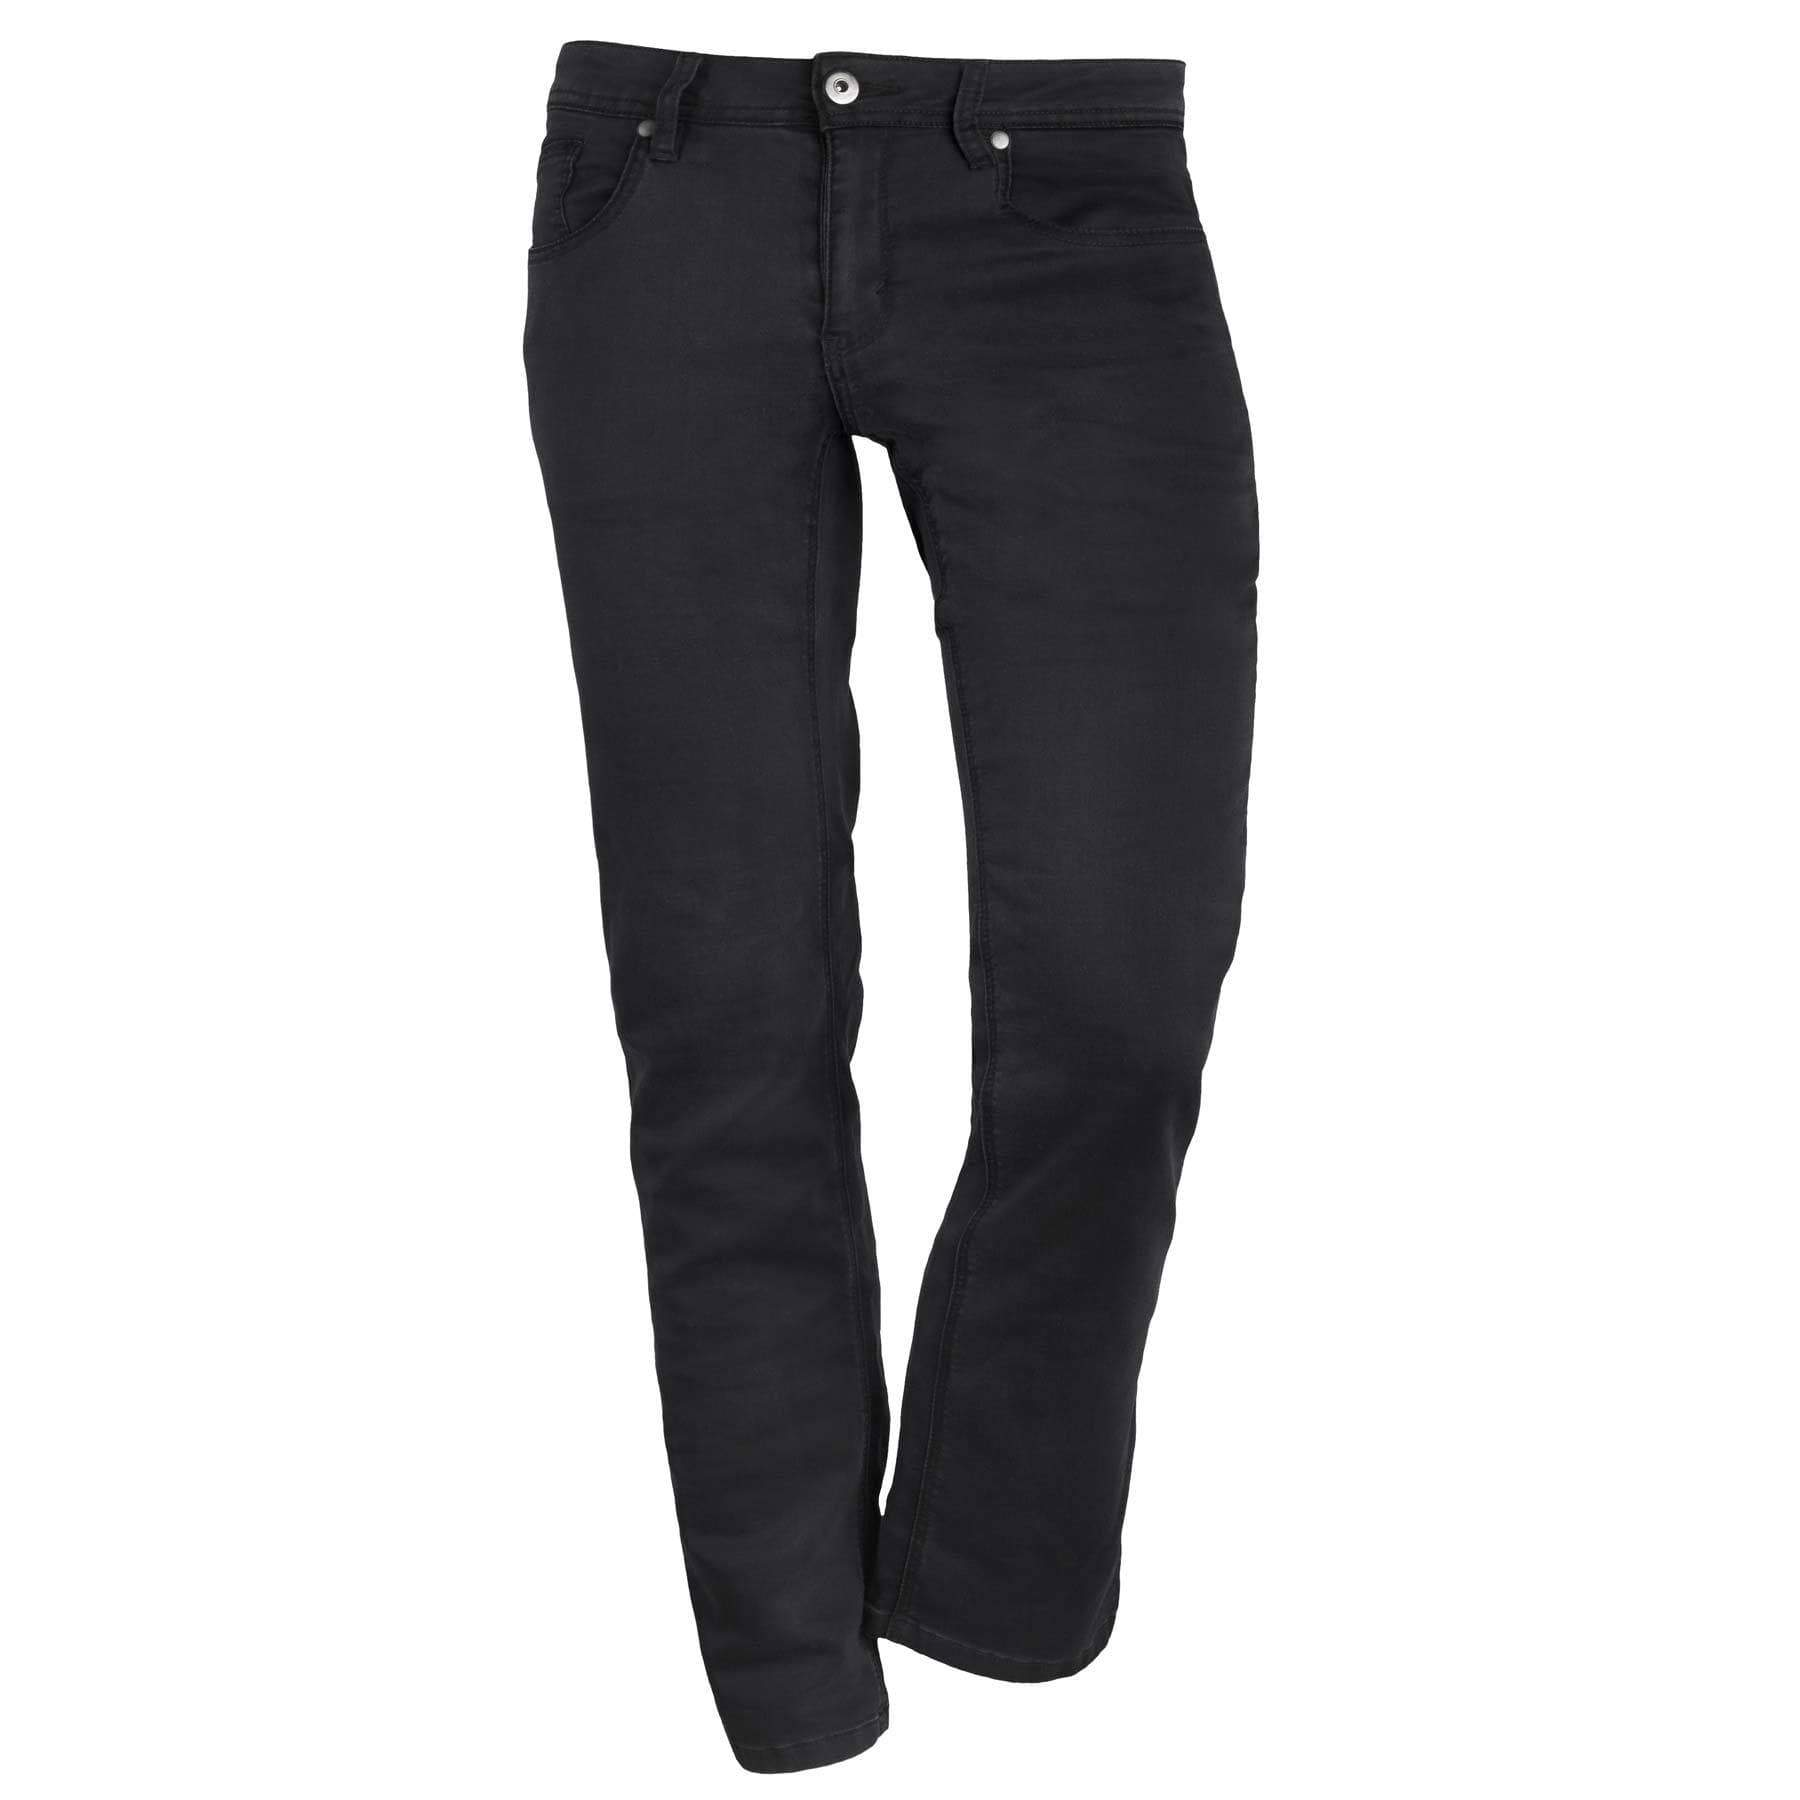 Alday Denim Pants Black / 28 / 30 Alday Denim